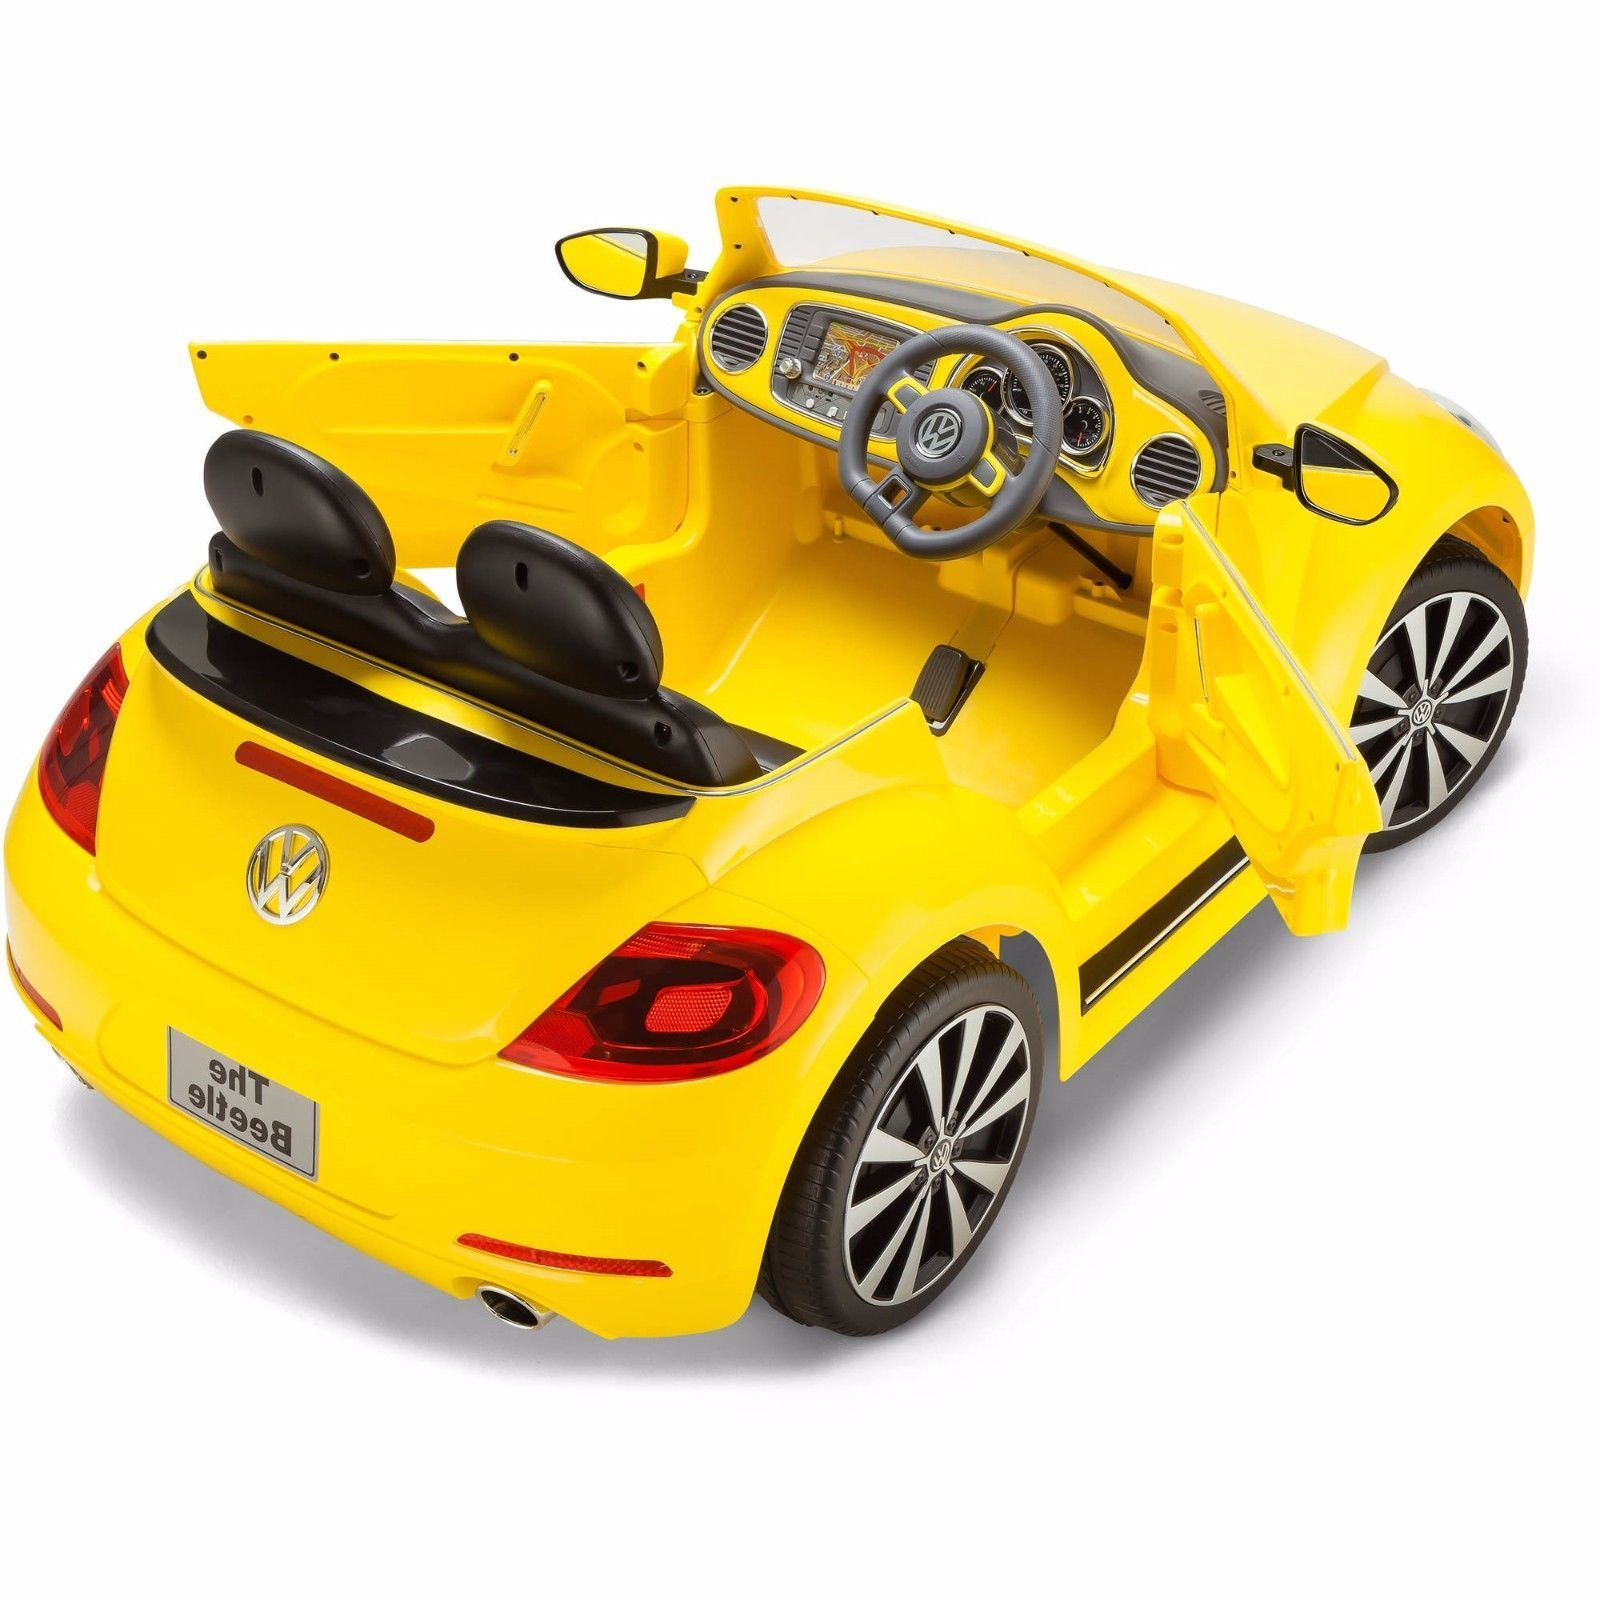 Ride On Toy Car : Kids ride on toy car vw beetle convertible volt battery